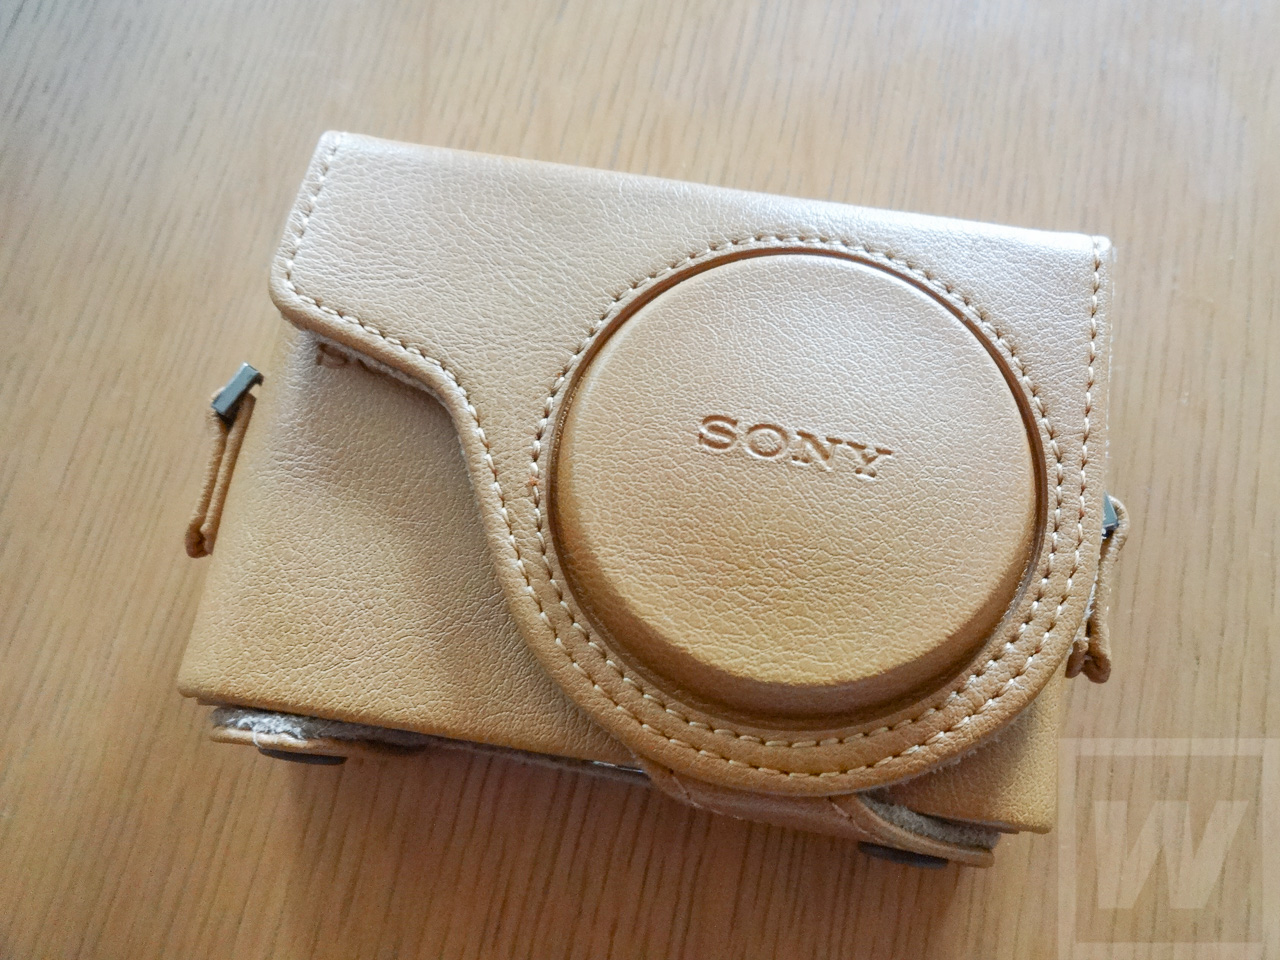 Sony WX350 Review 034